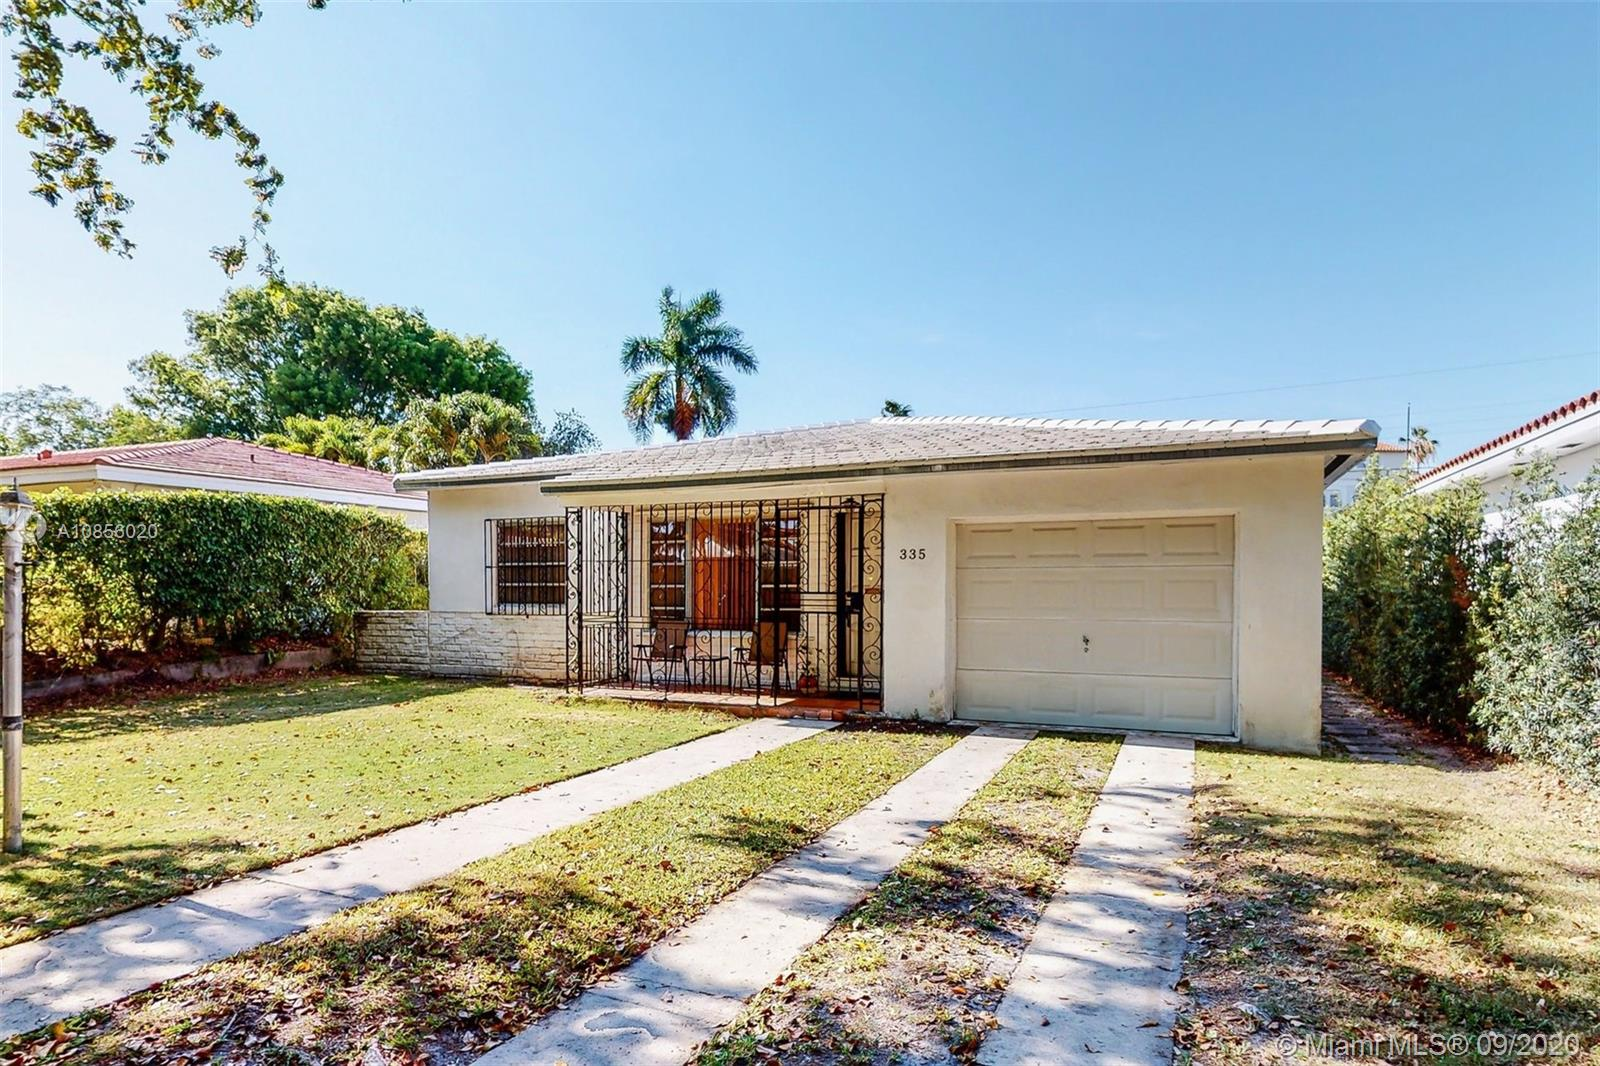 335 Romano Ave, Coral Gables, Florida 33134, 3 Bedrooms Bedrooms, ,2 BathroomsBathrooms,Residential,For Sale,335 Romano Ave,A10856020